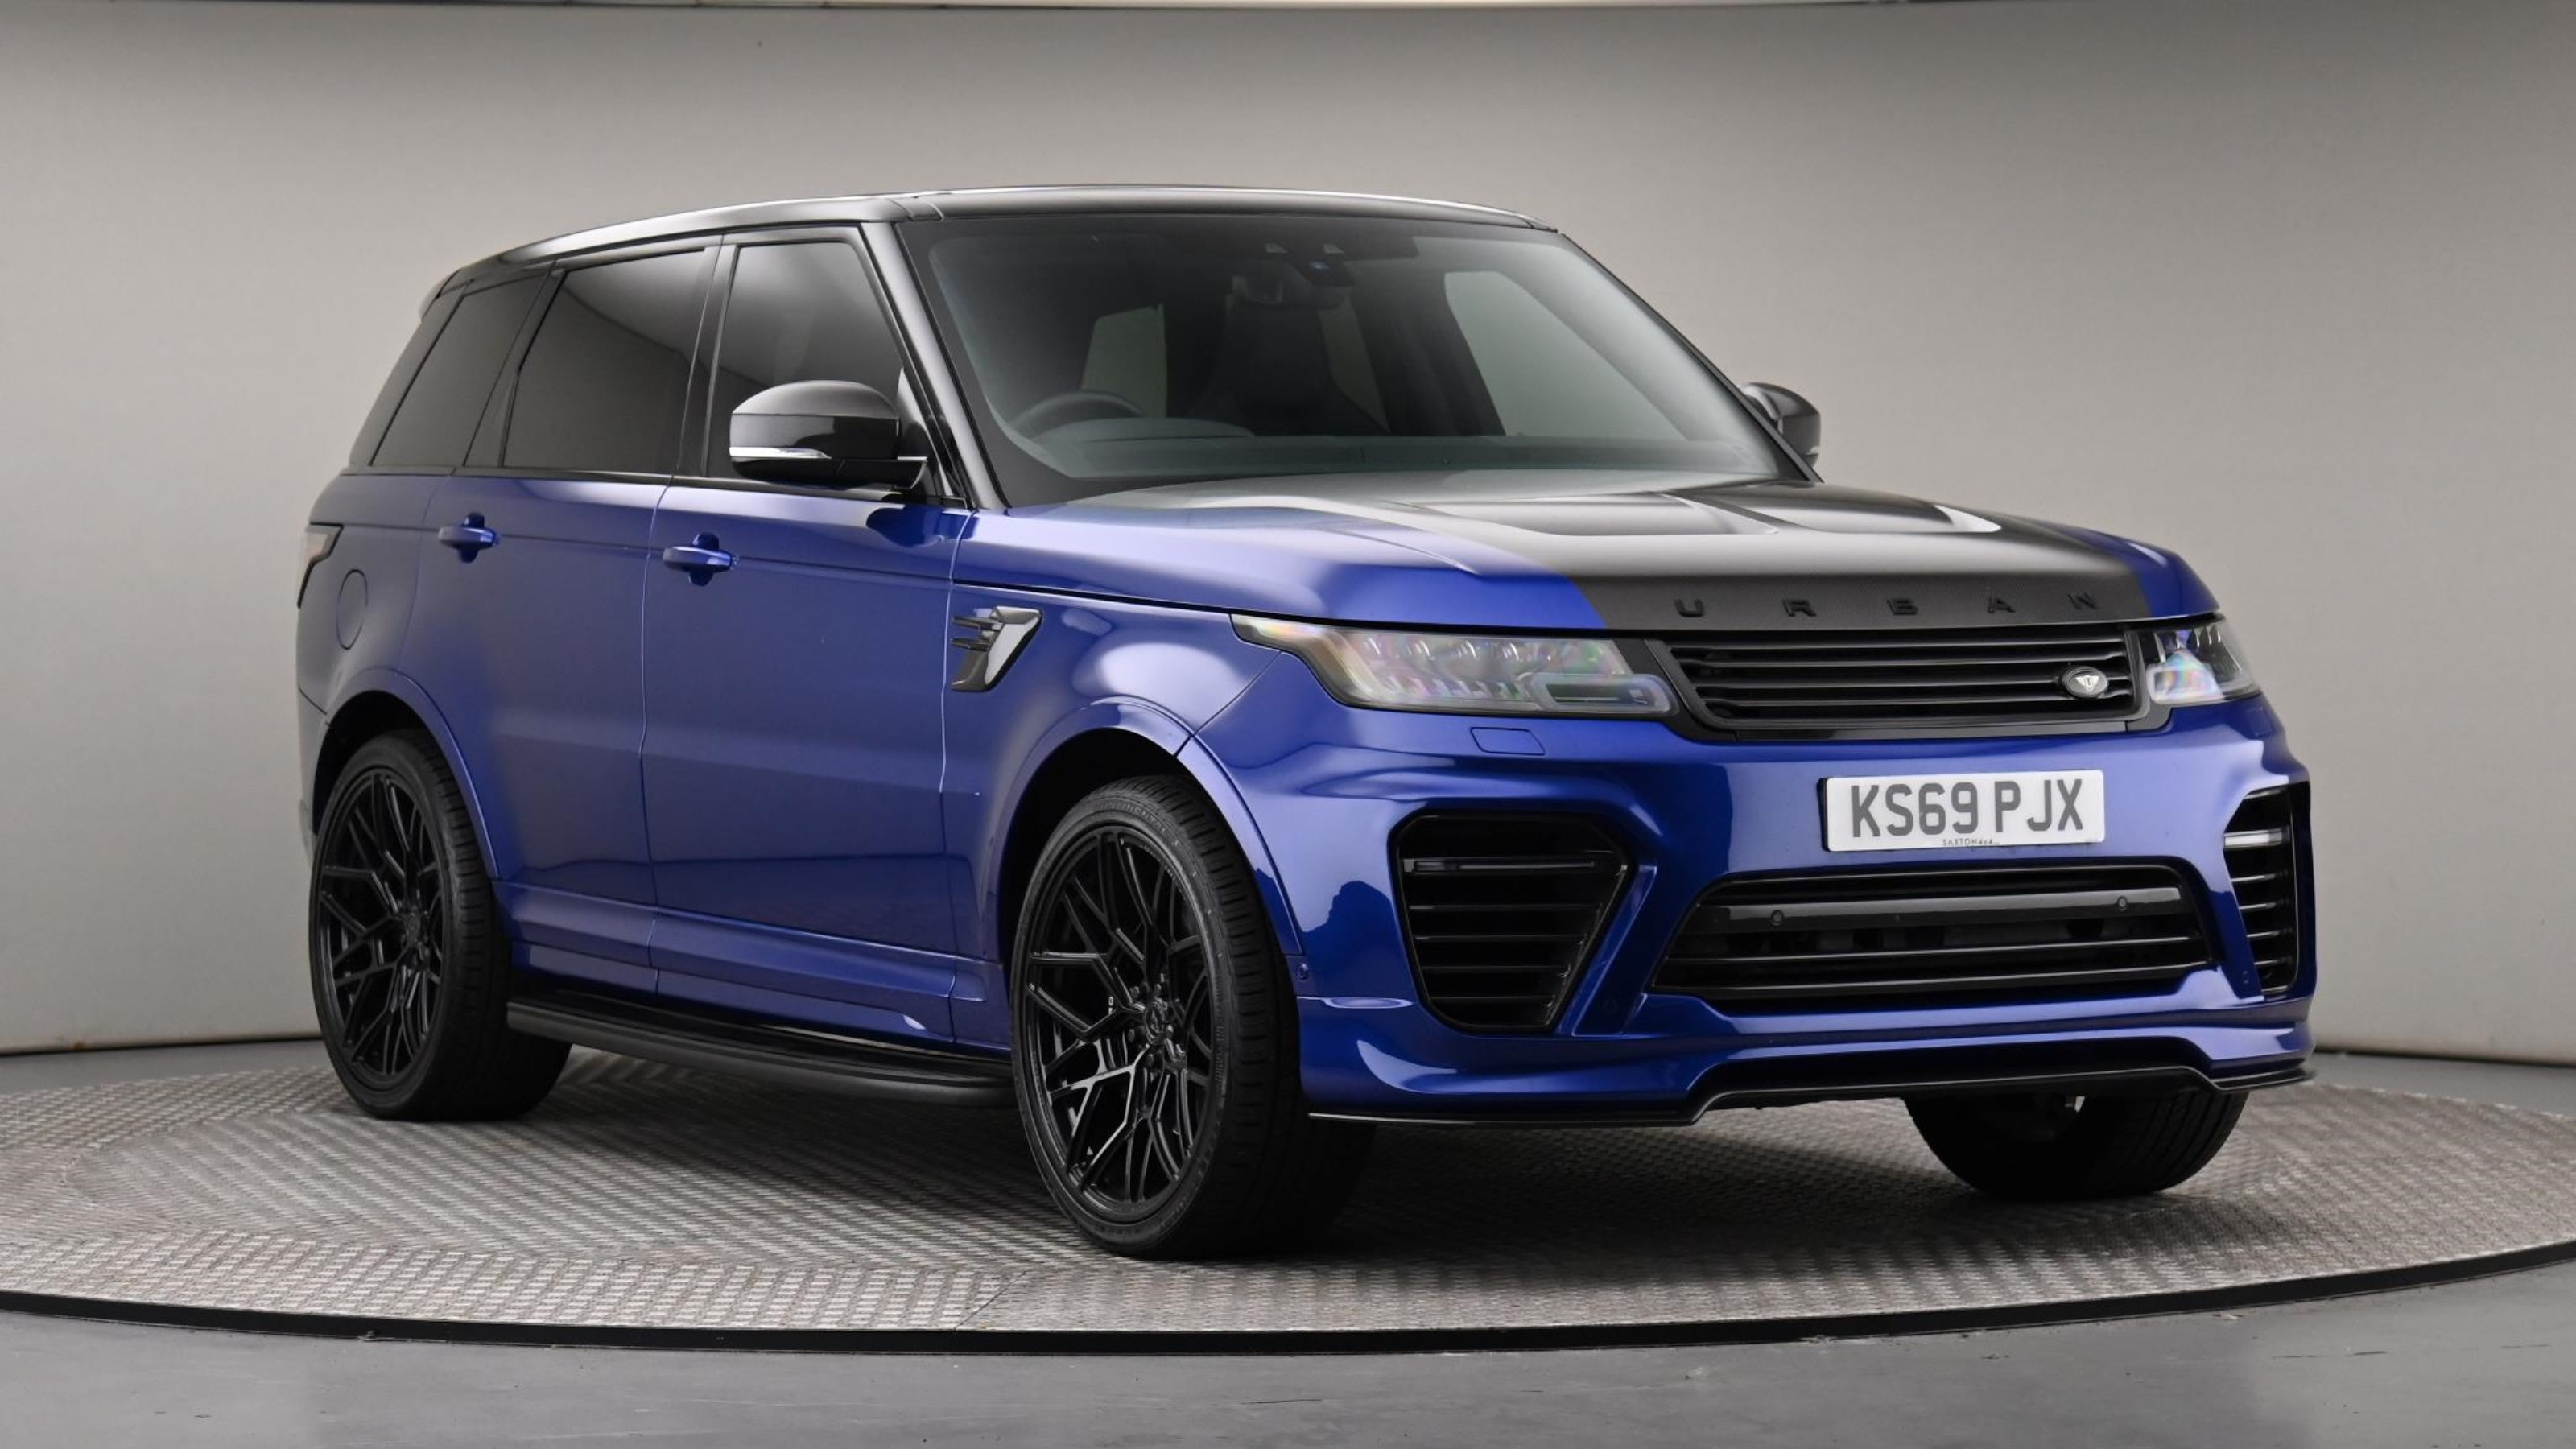 Used 2020 Land Rover RANGE ROVER SPORT 5.0 V8 S/C 575 SVR 5dr Auto BLUE at Saxton4x4